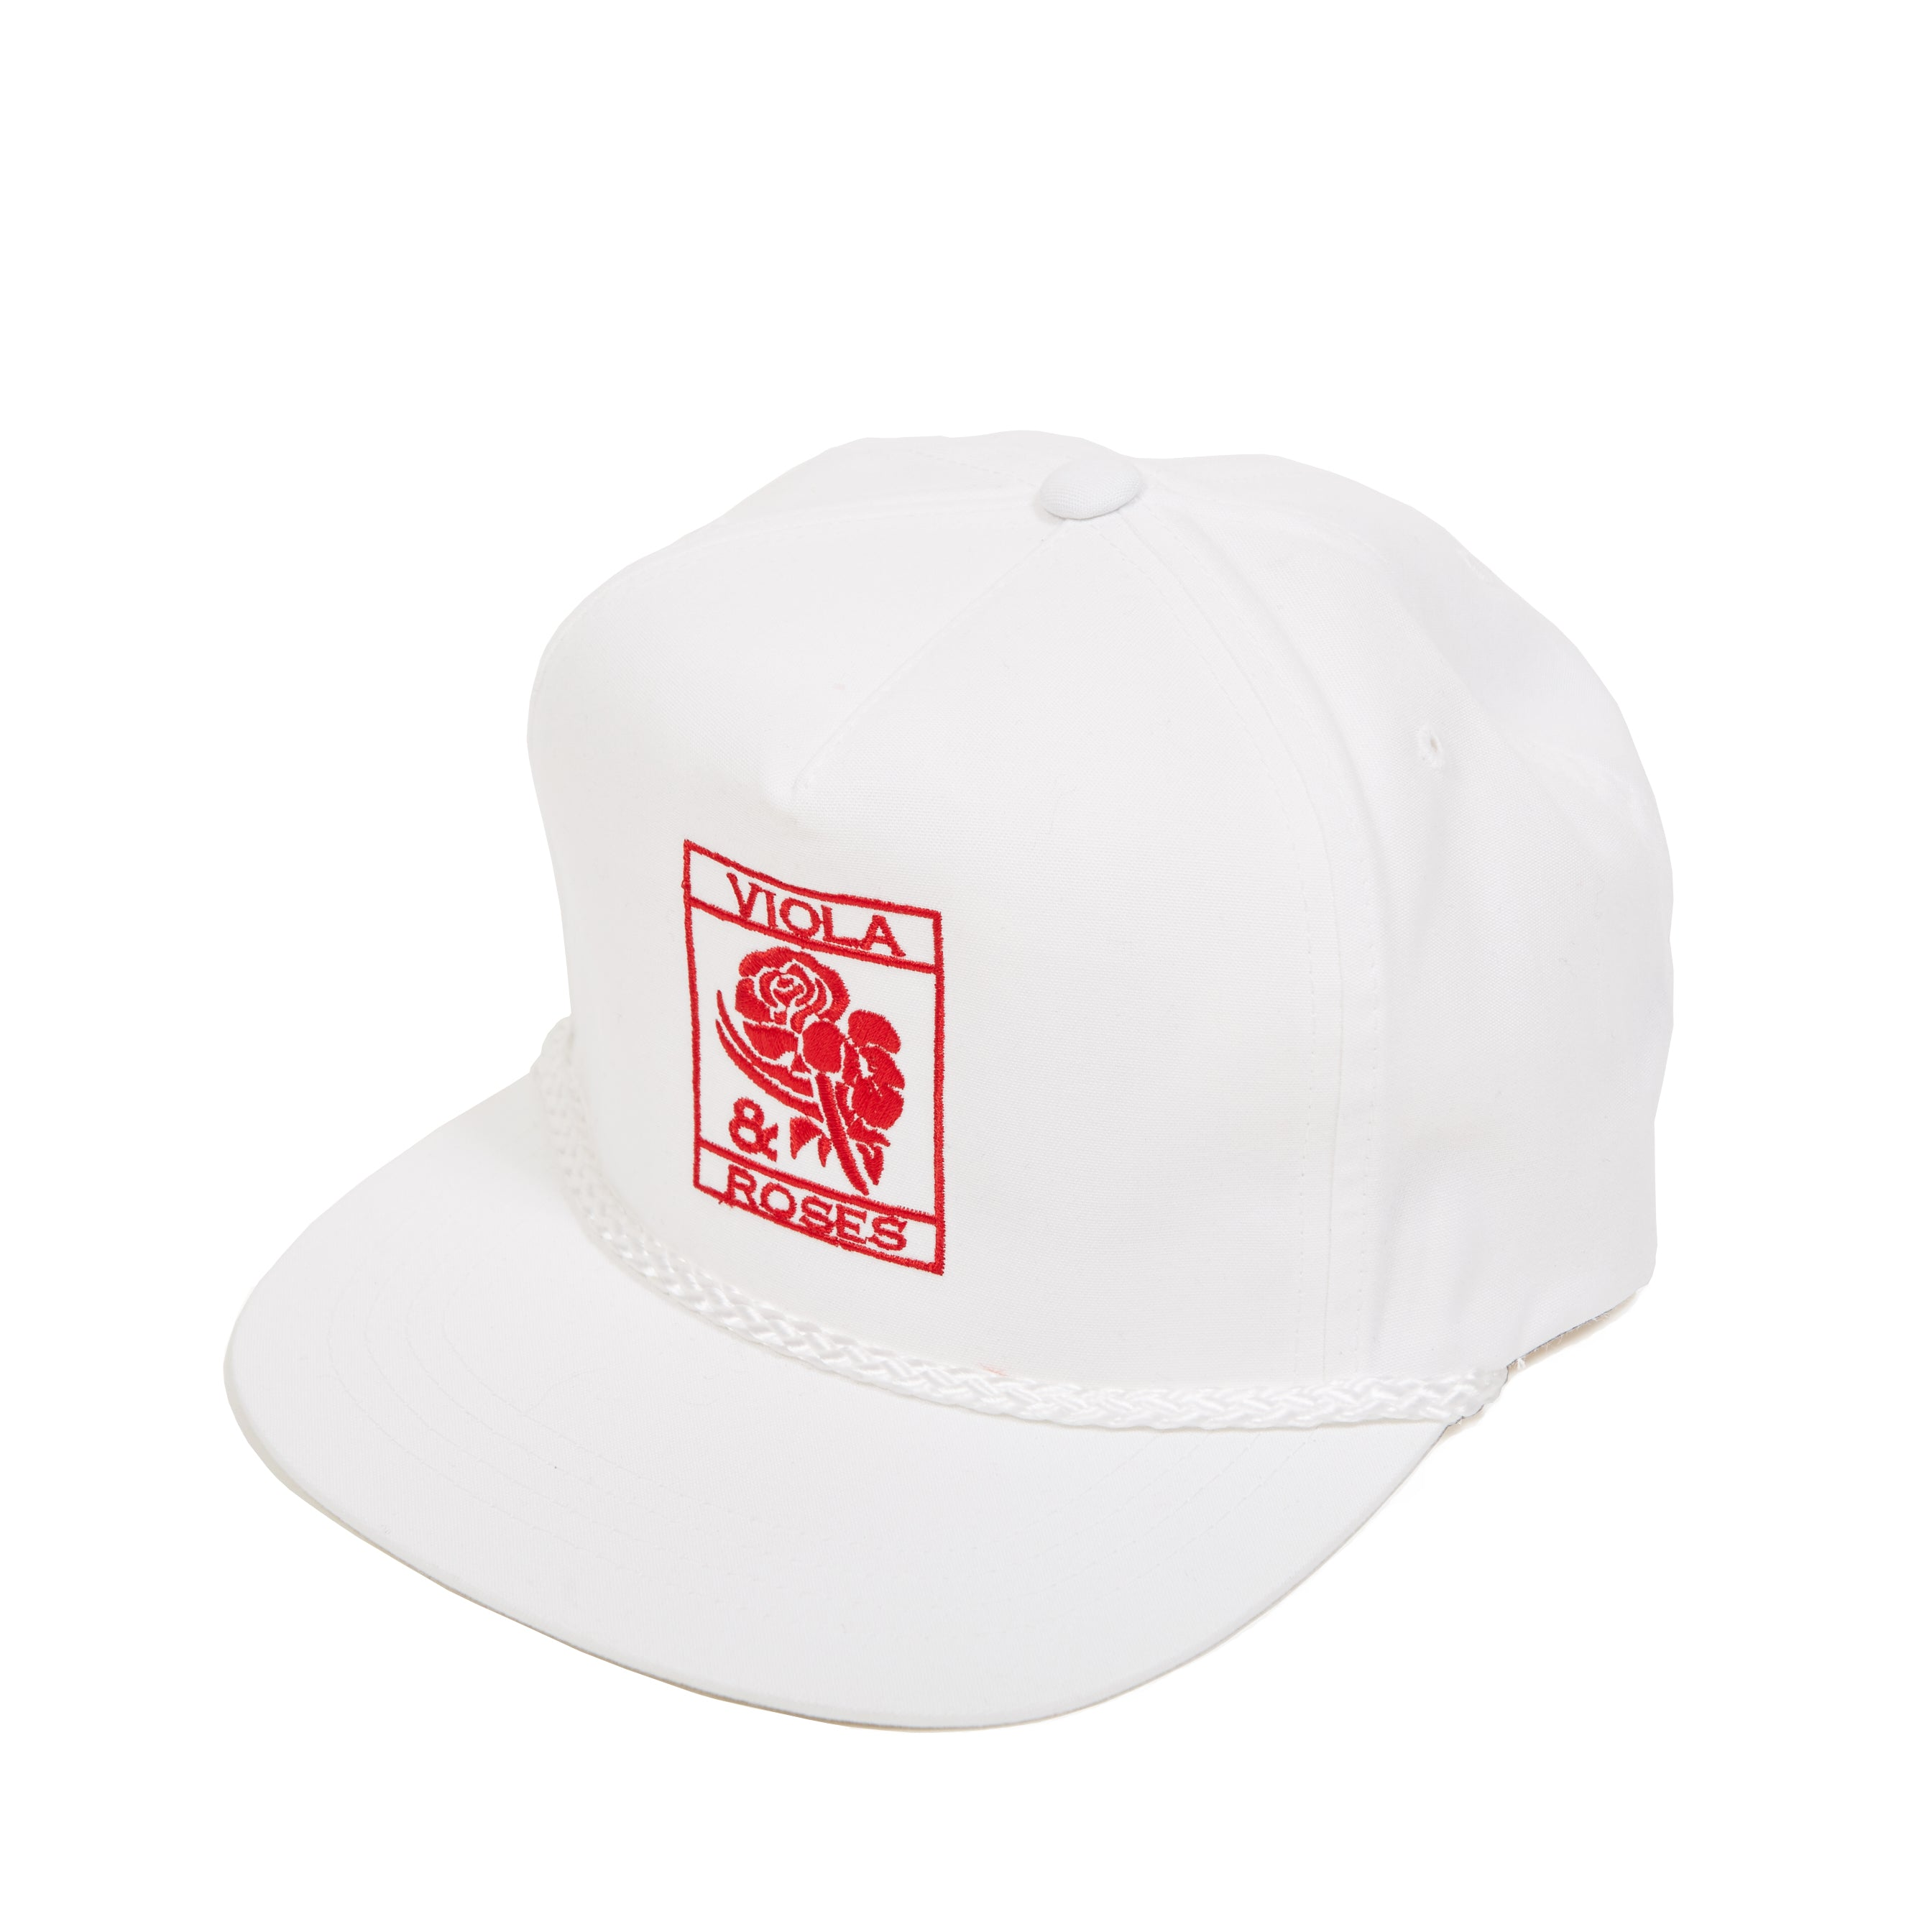 002 Golf Cap Box Logo